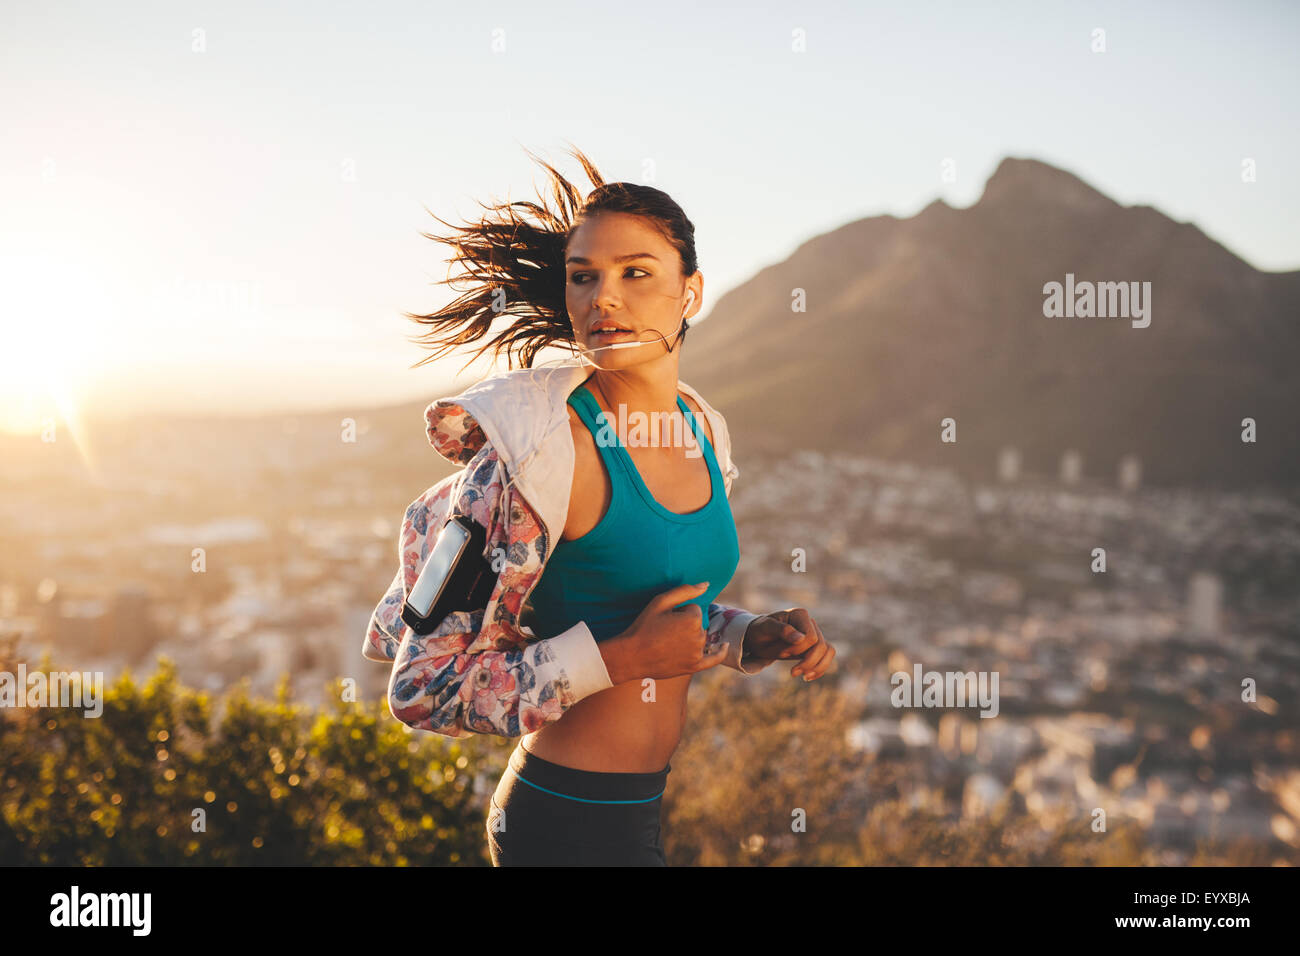 Female runner running outdoor in nature. Young woman jogging in morning looking over shoulder. - Stock Image